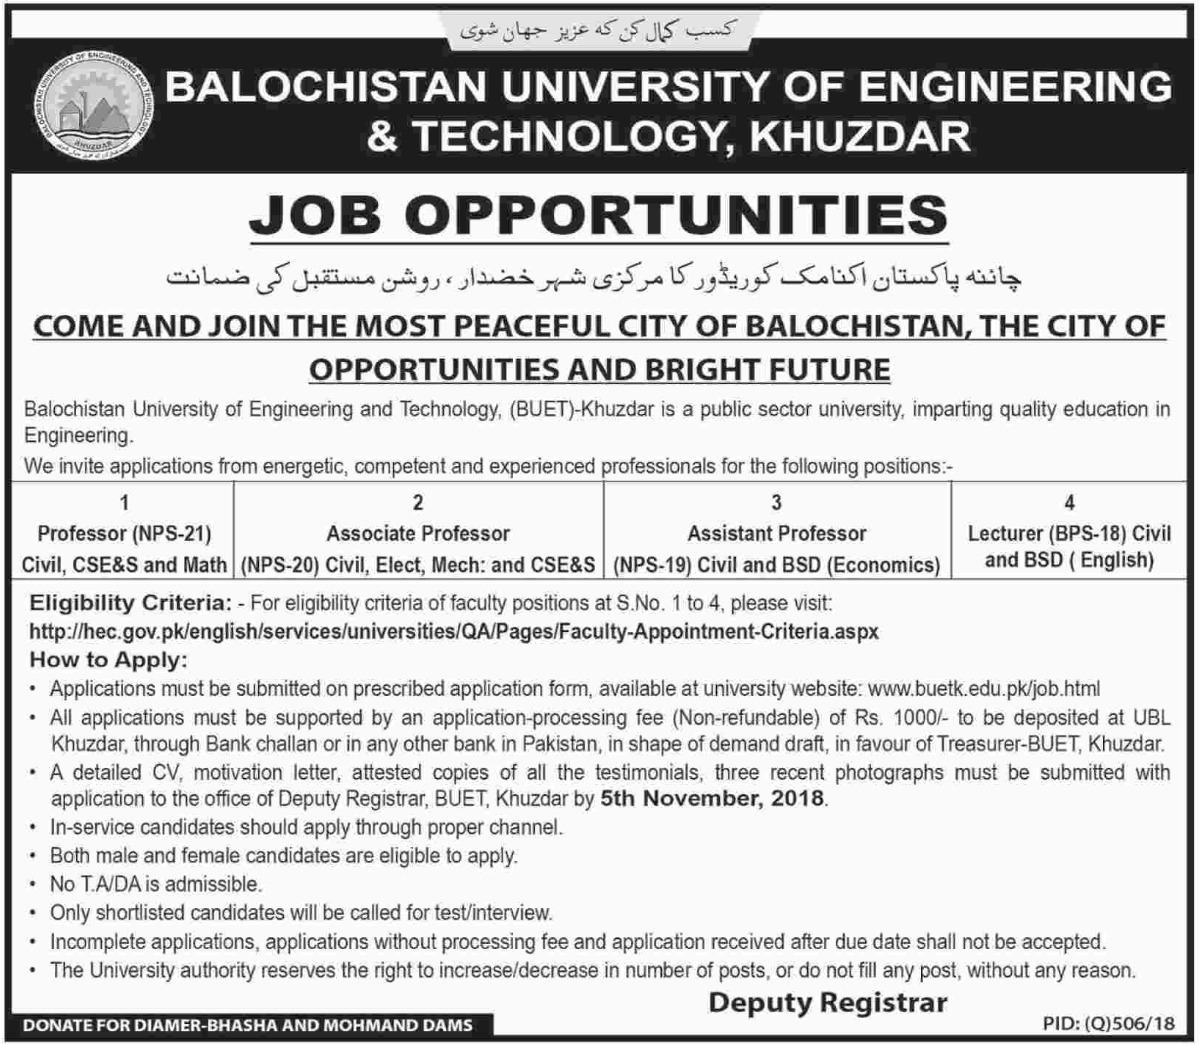 Balochistan University of Engineering & Technology Khuzdar Jobs 2018